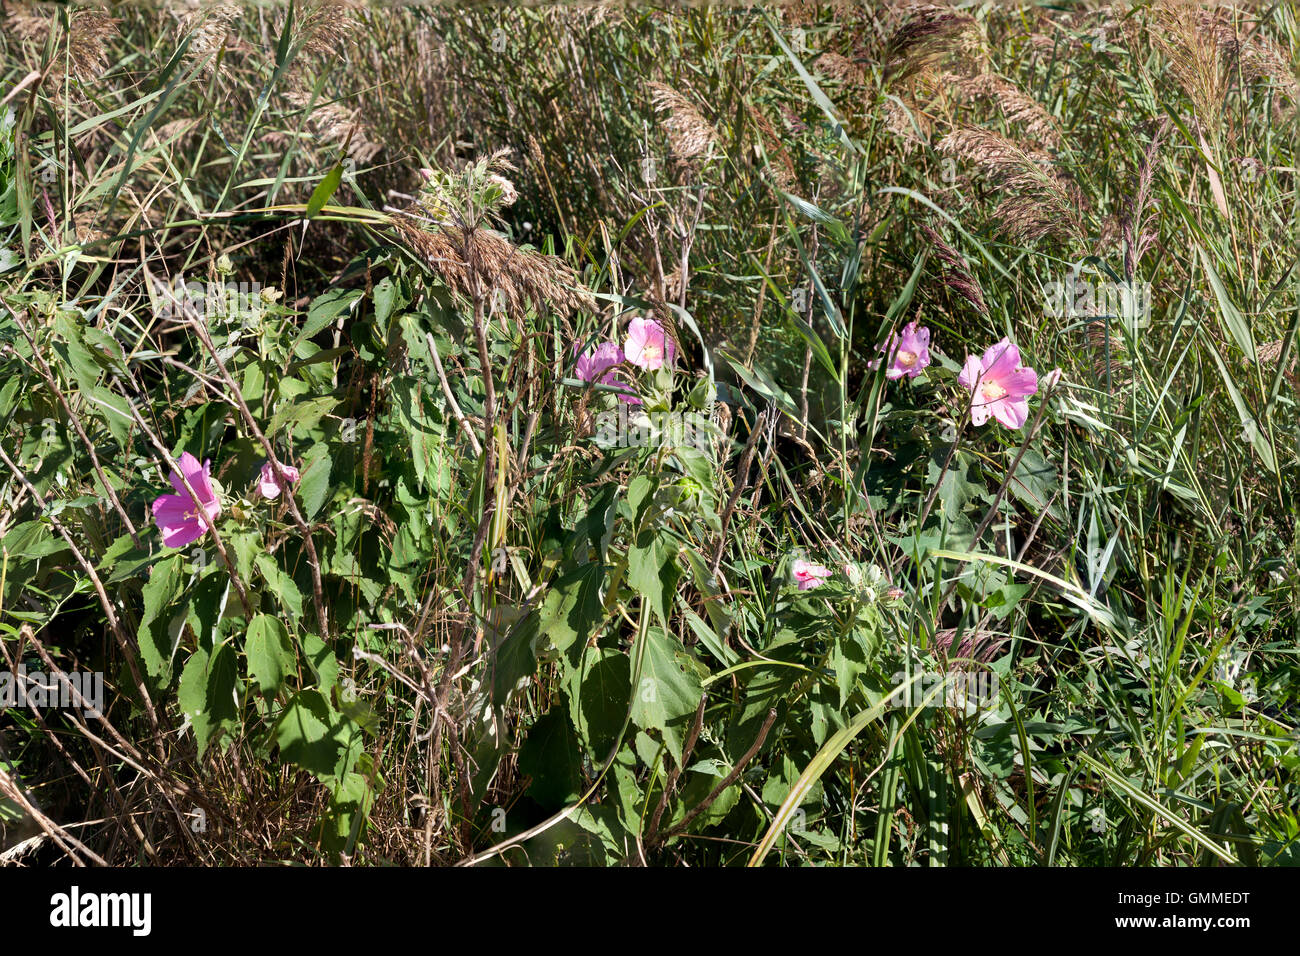 A view of the tangle of wild plants in the 'Barthes' of Monbardon (Soorts Hossegor - Landes - France). - Stock Image